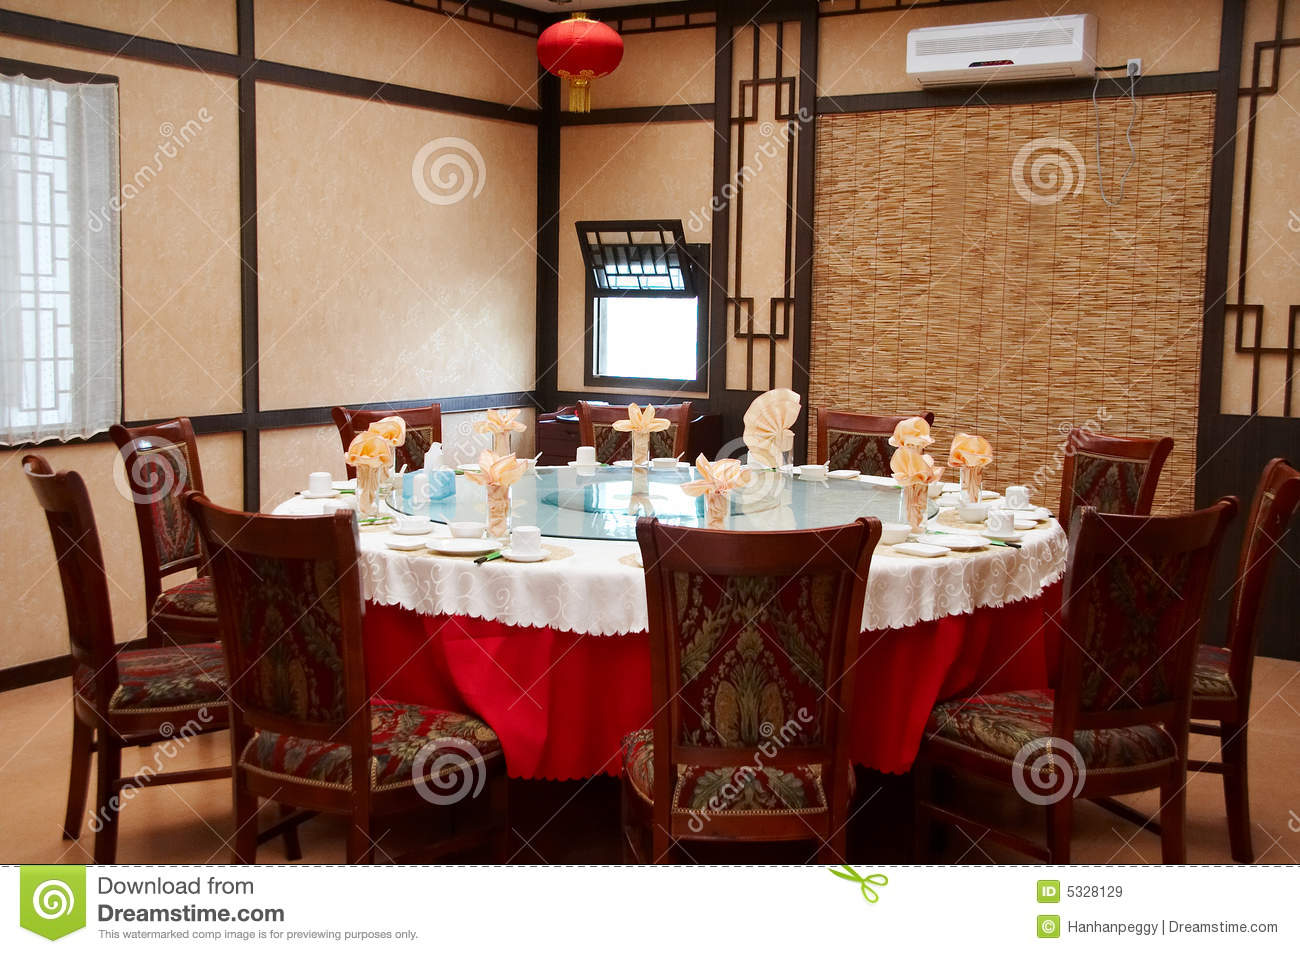 Traditional chinese restaurant royalty free stock images for Ancient chinese cuisine